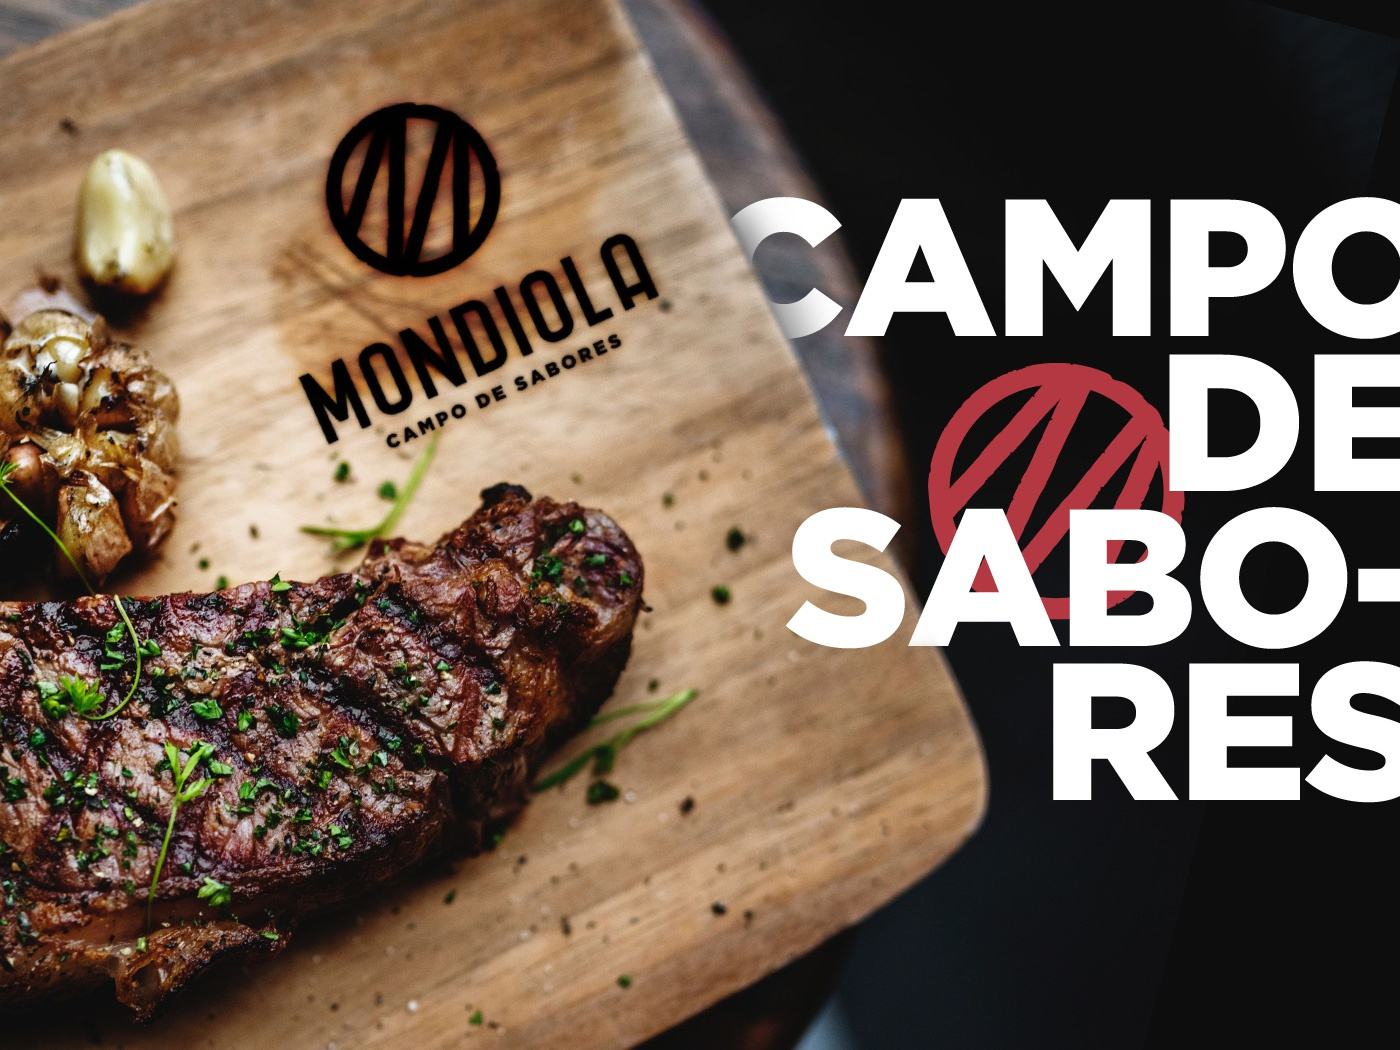 Mondiola | Branding monogram asado graphic design food truck restaurant logo illustration identity design brand strategy branding